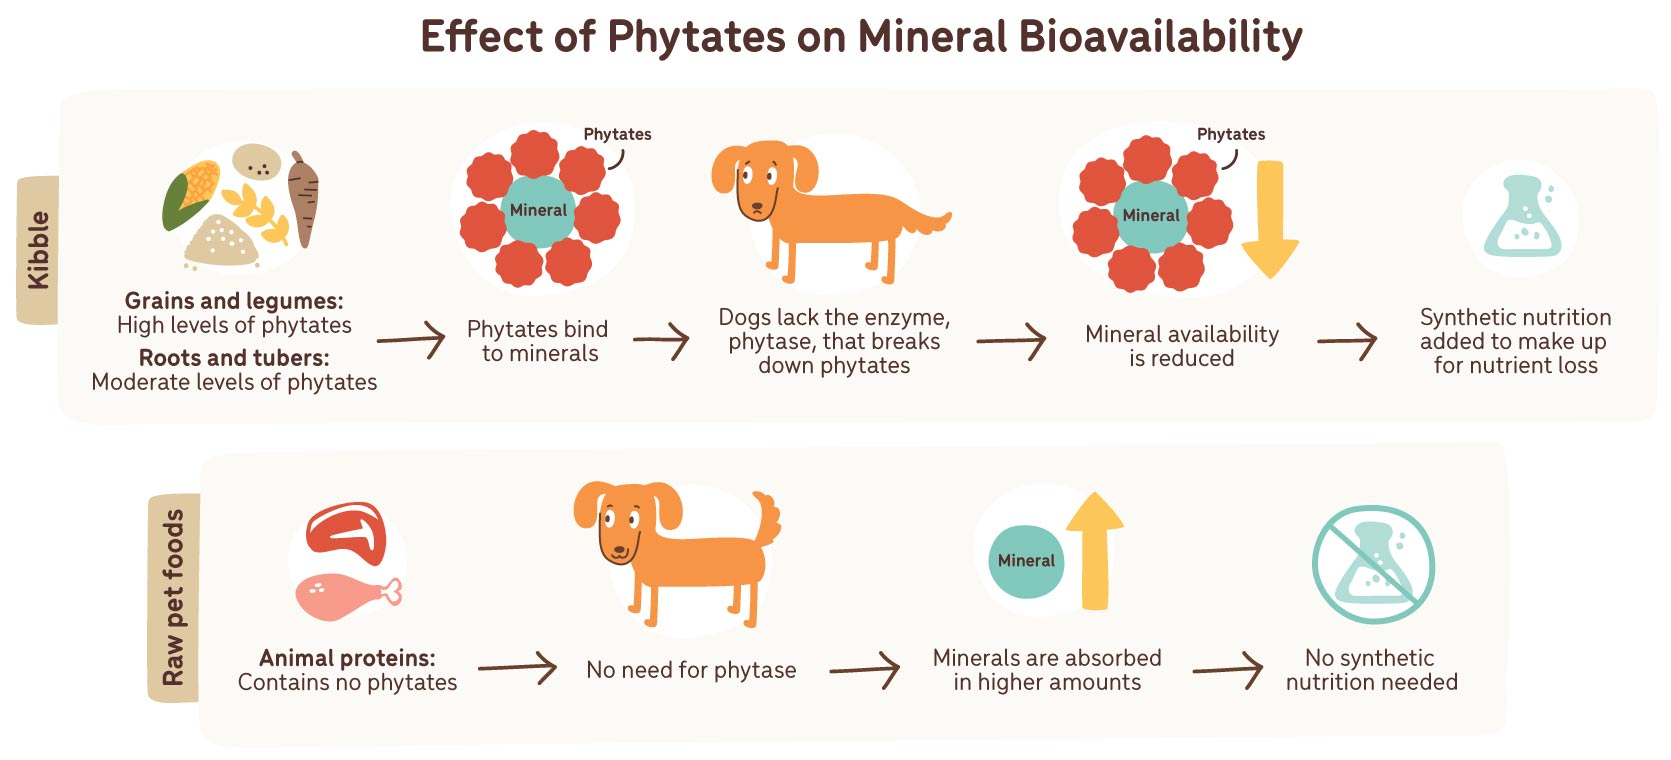 effects of phytates on mineral bioavailability